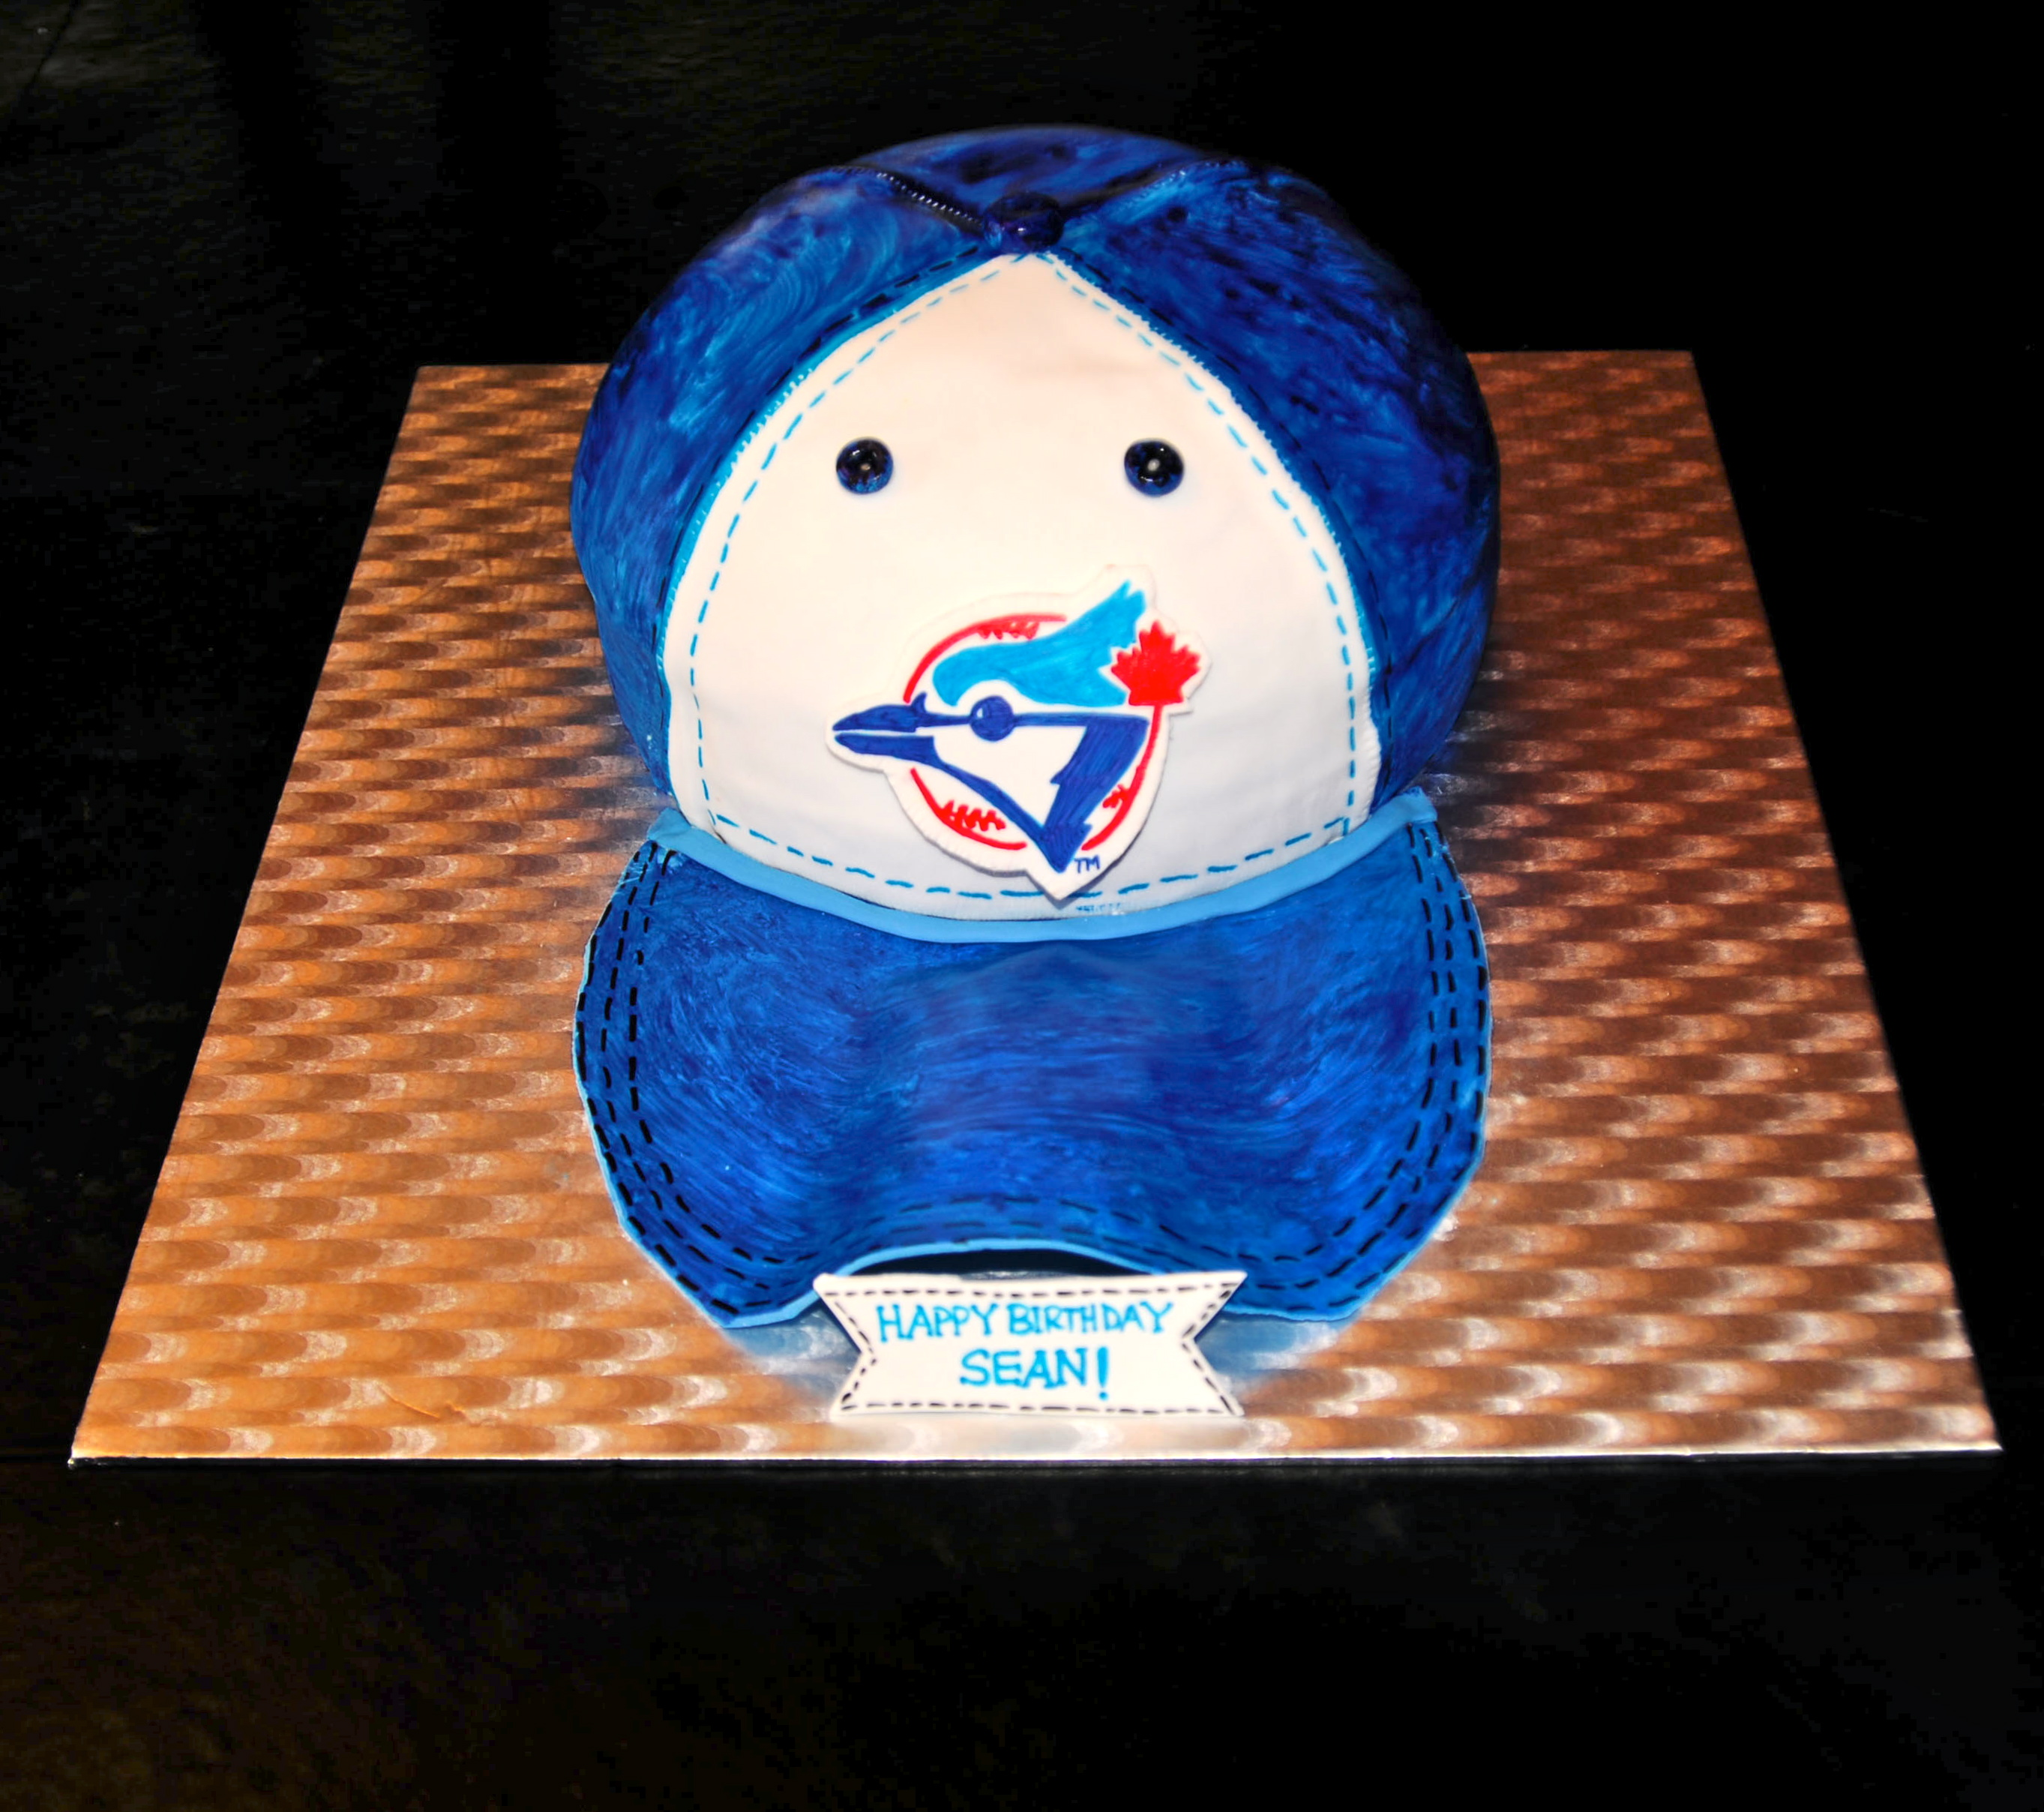 Blue Jays Cake Images : Custom Cakes Sugar Mamas Dessert Co.